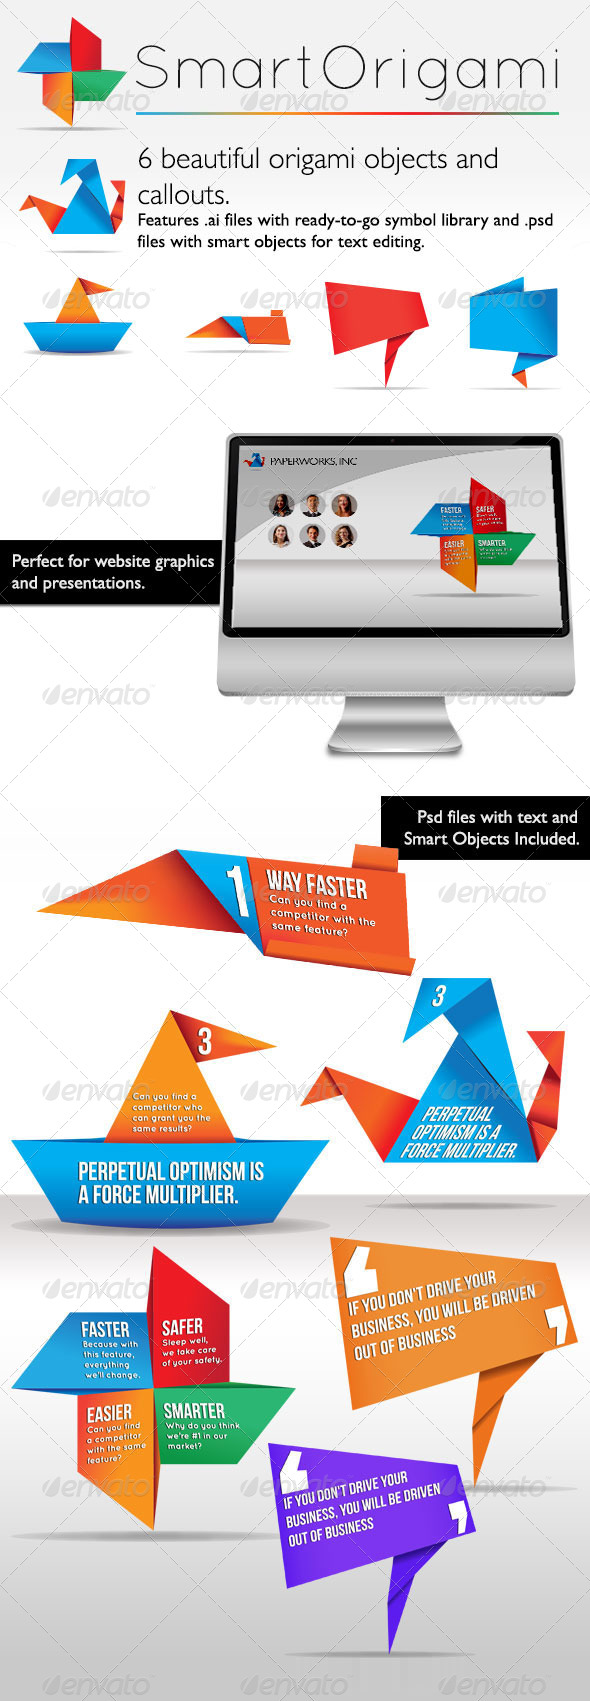 Smart Origami Symbols By Luca8link Graphicriver